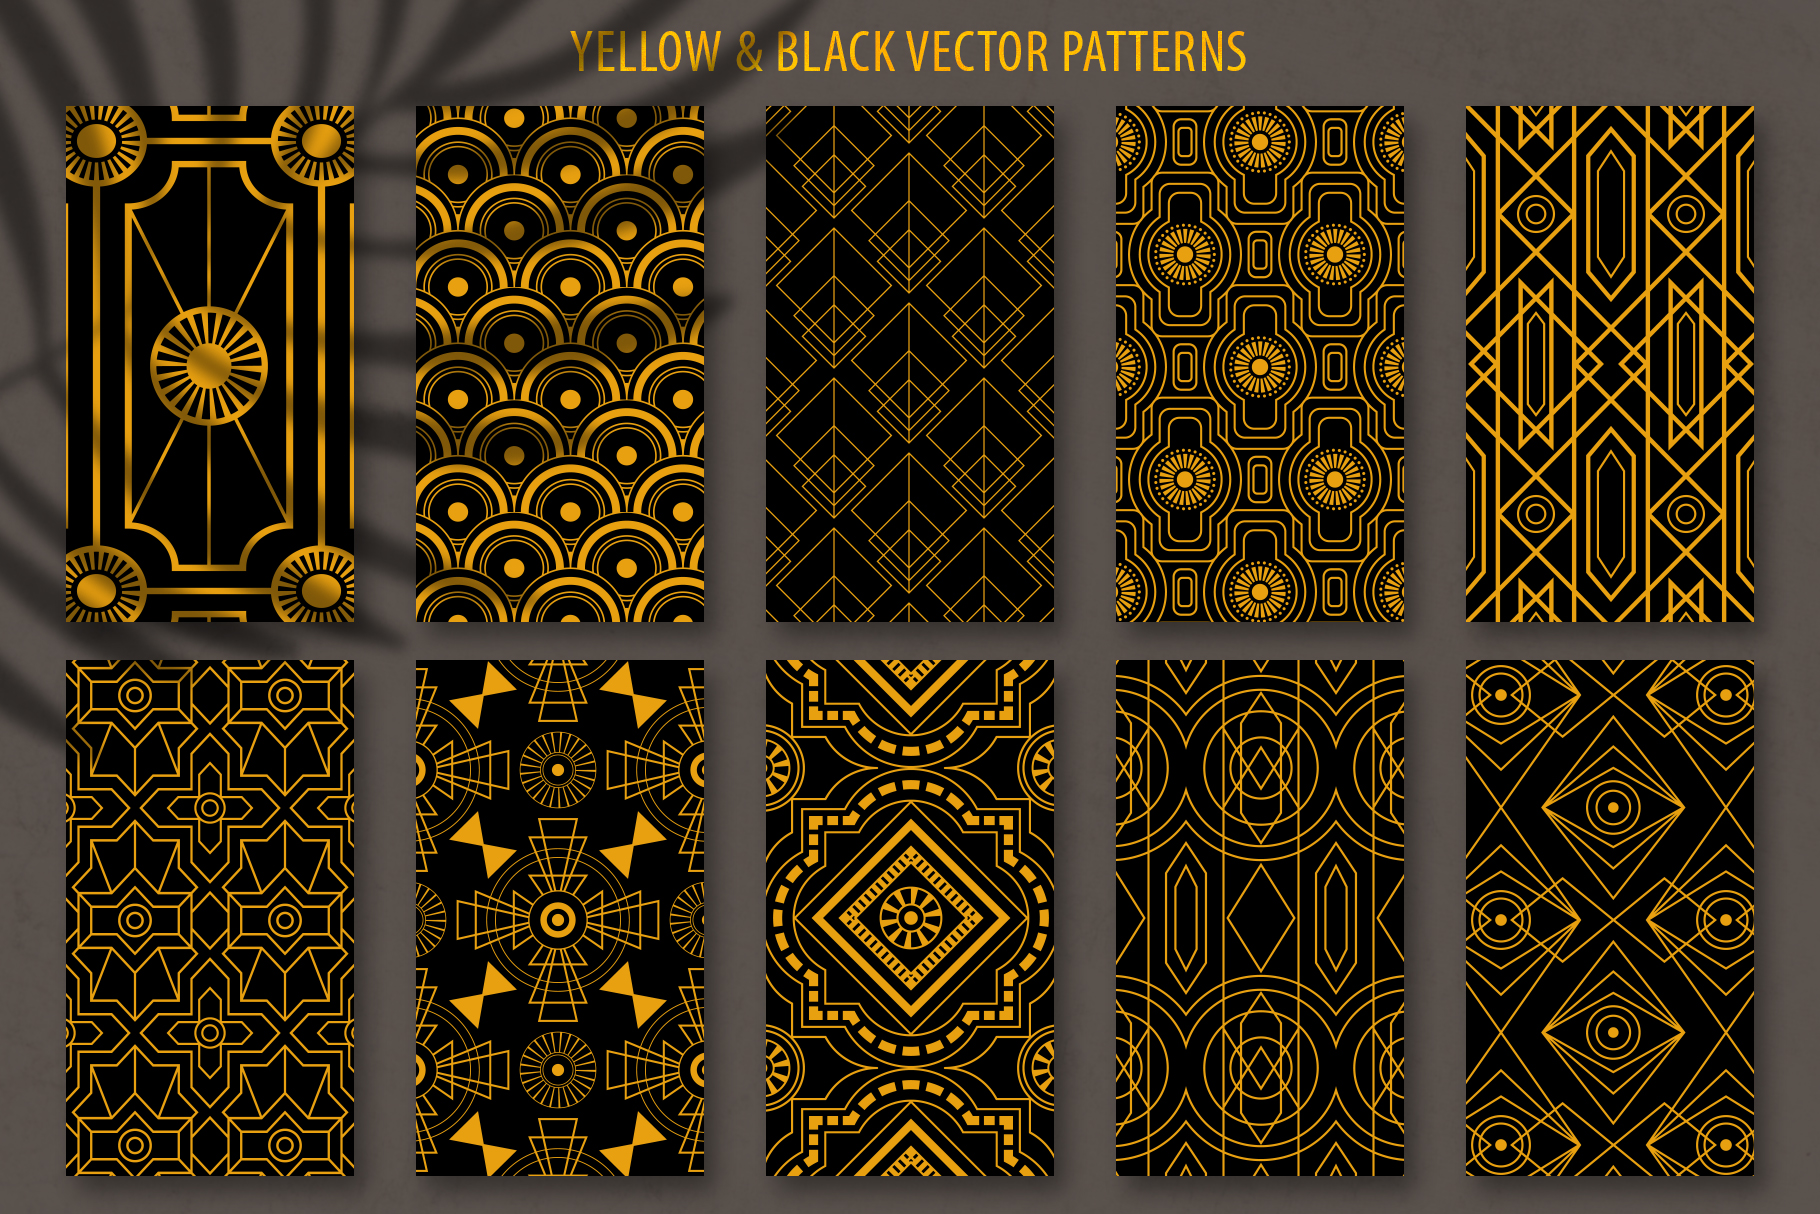 Geometric Art Deco Patterns - 20 Seamless Vector Patterns example image 8